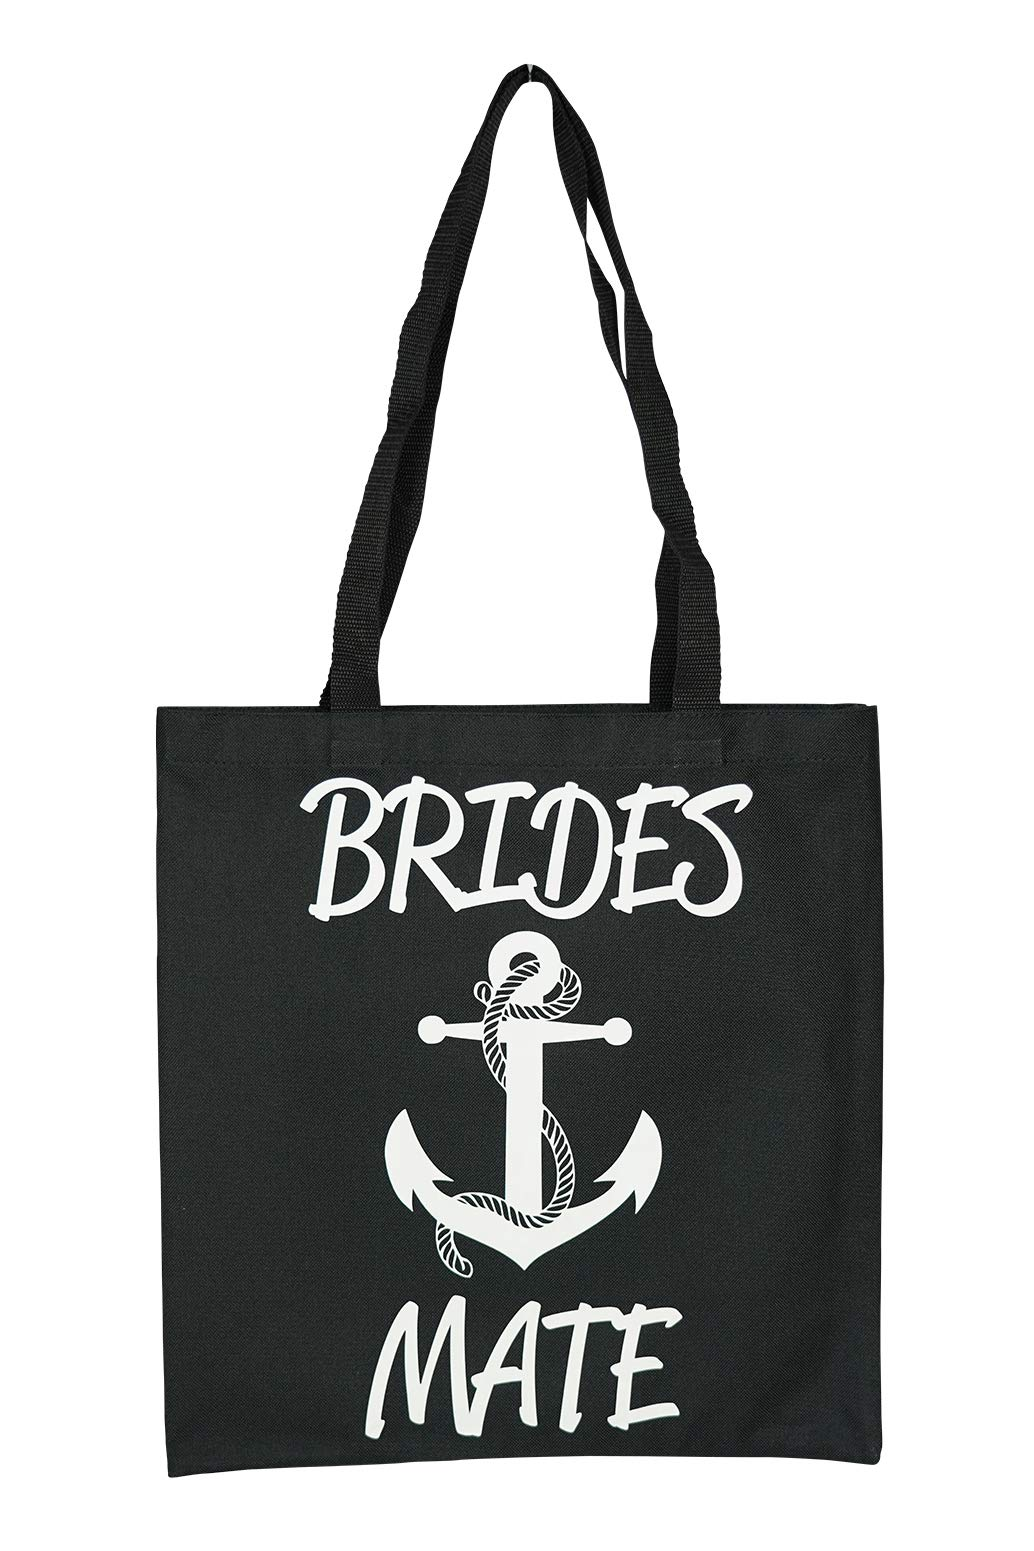 Nautical Anchor Brides Mate (Bridesmaid) Tote Bag for Wedding Shower, Bachelorette Party or Day of the Wedding